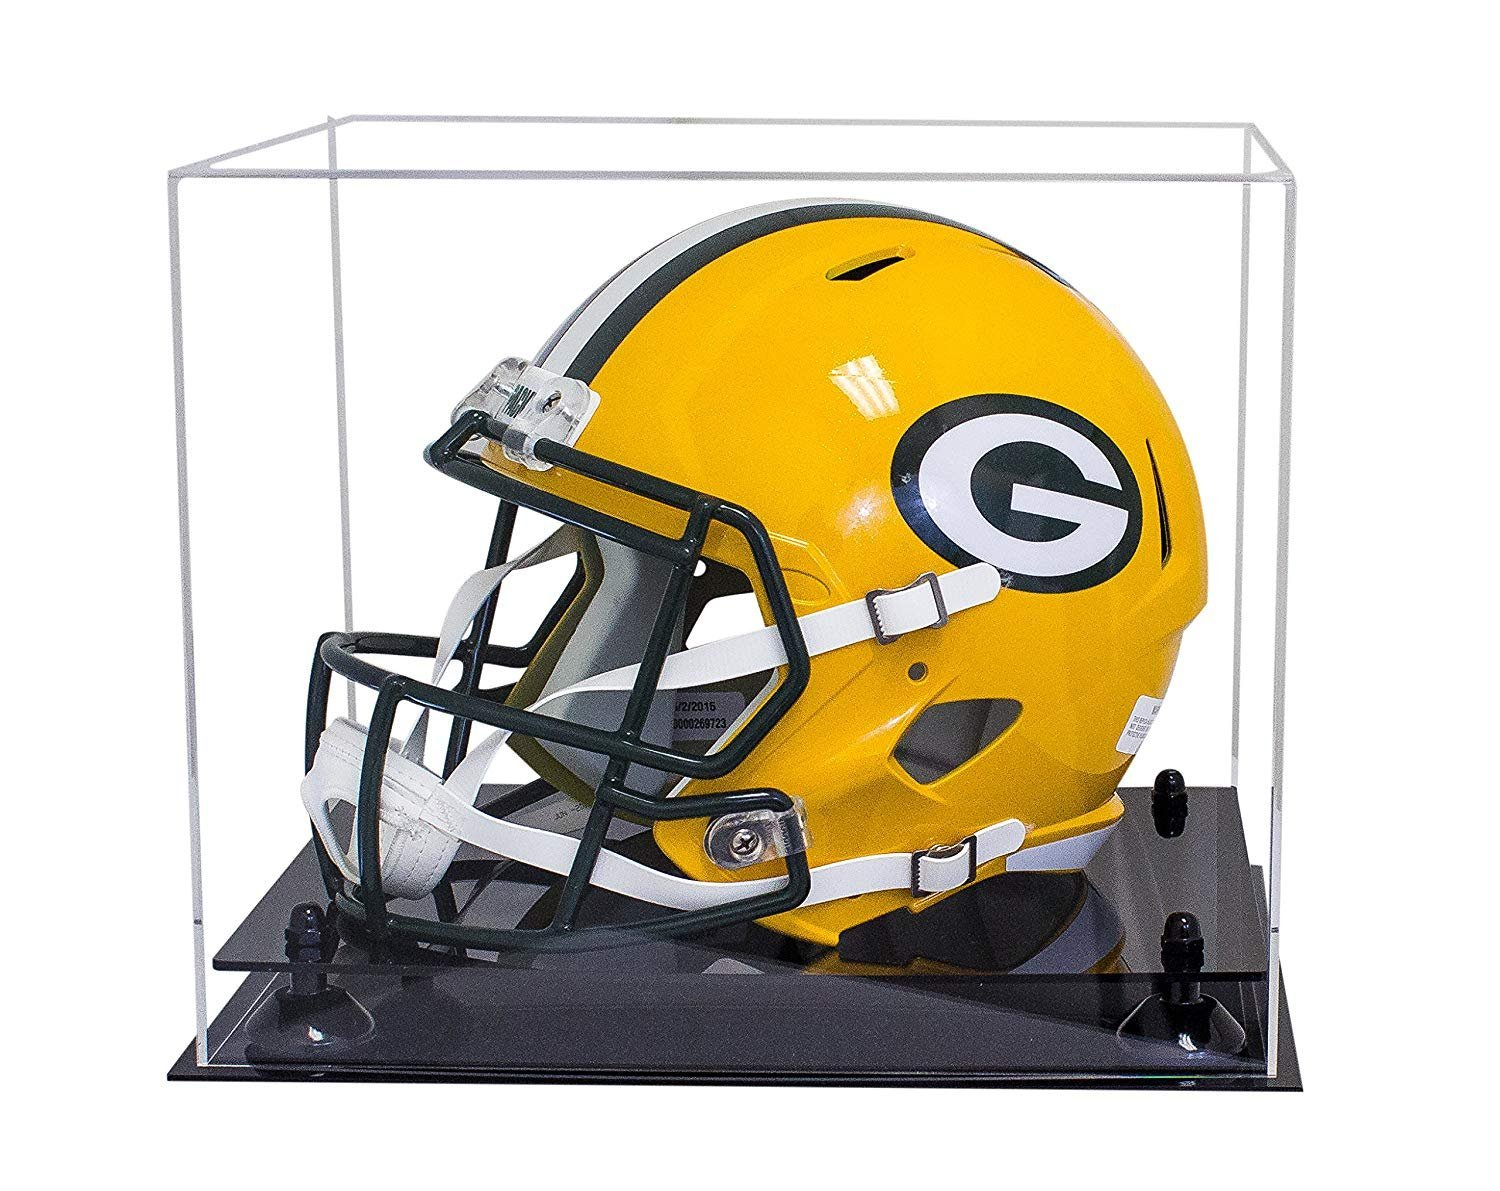 Display Cases Mini Helmet Display Case Acrylic With Black Acrylic Base And Gold Risers Soft And Light Autographs-original